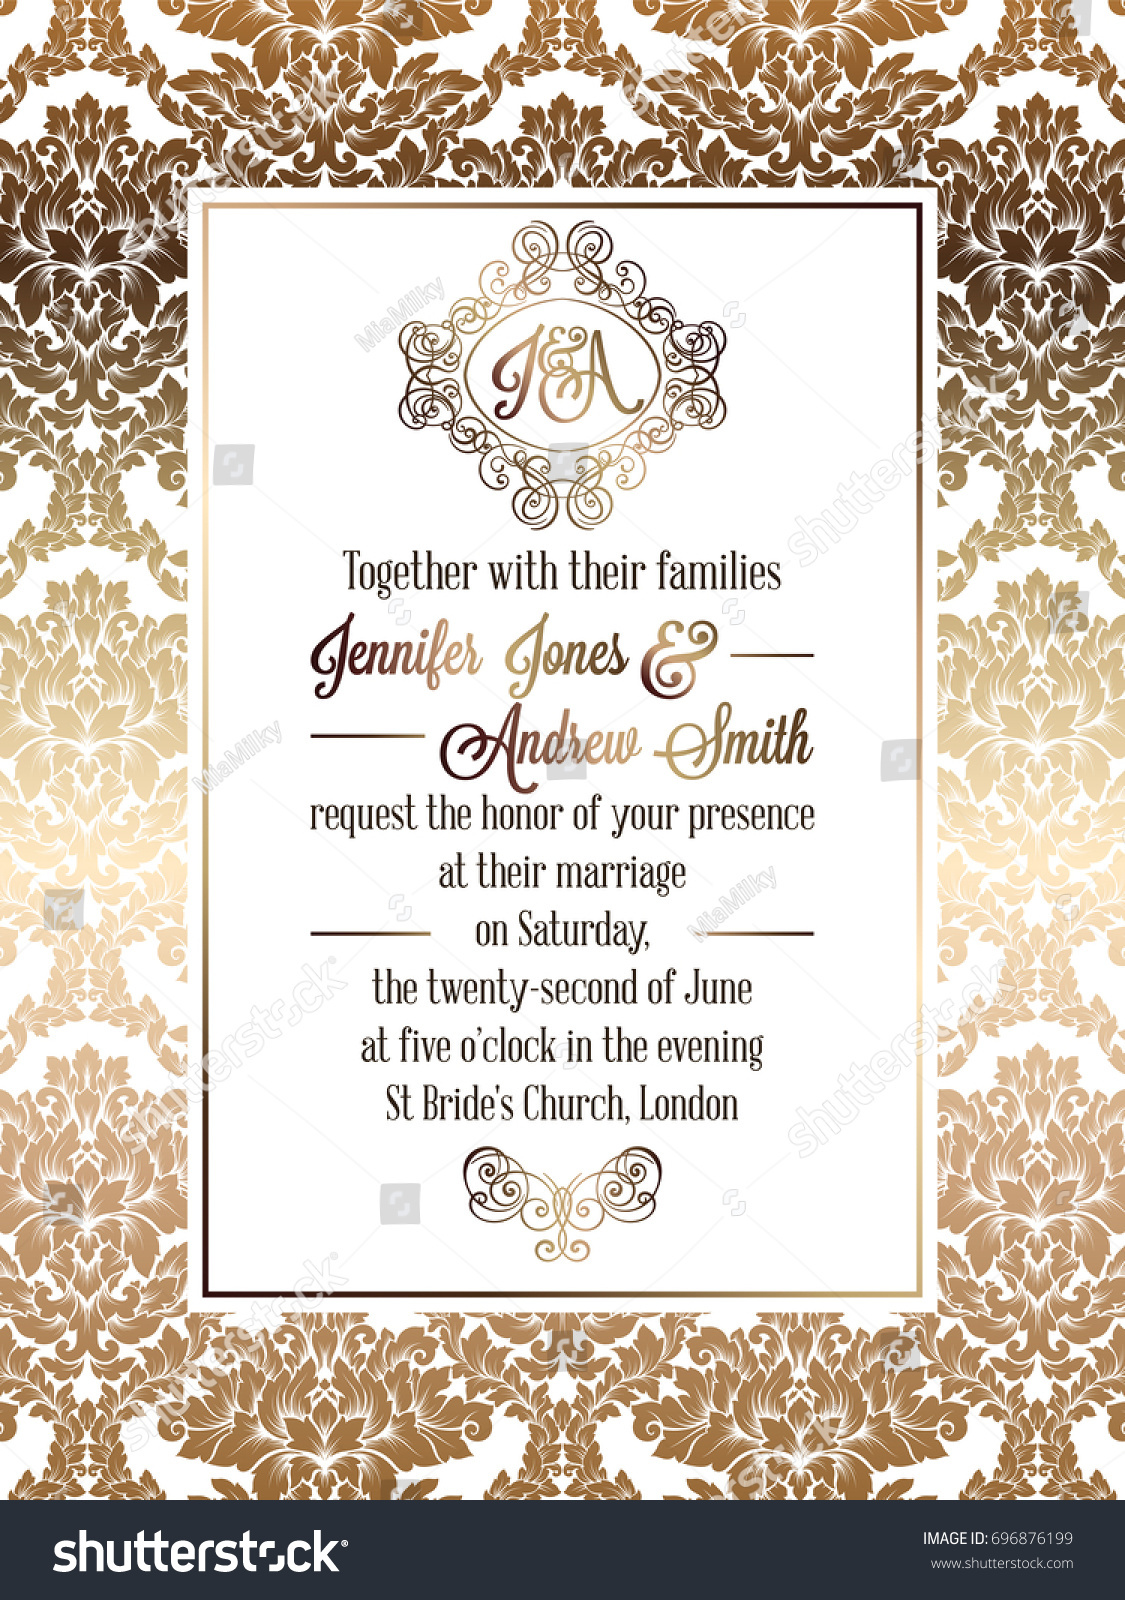 Vintage baroque style wedding invitation card stock illustration vintage baroque style wedding invitation card template elegant formal design with damask background stopboris Image collections